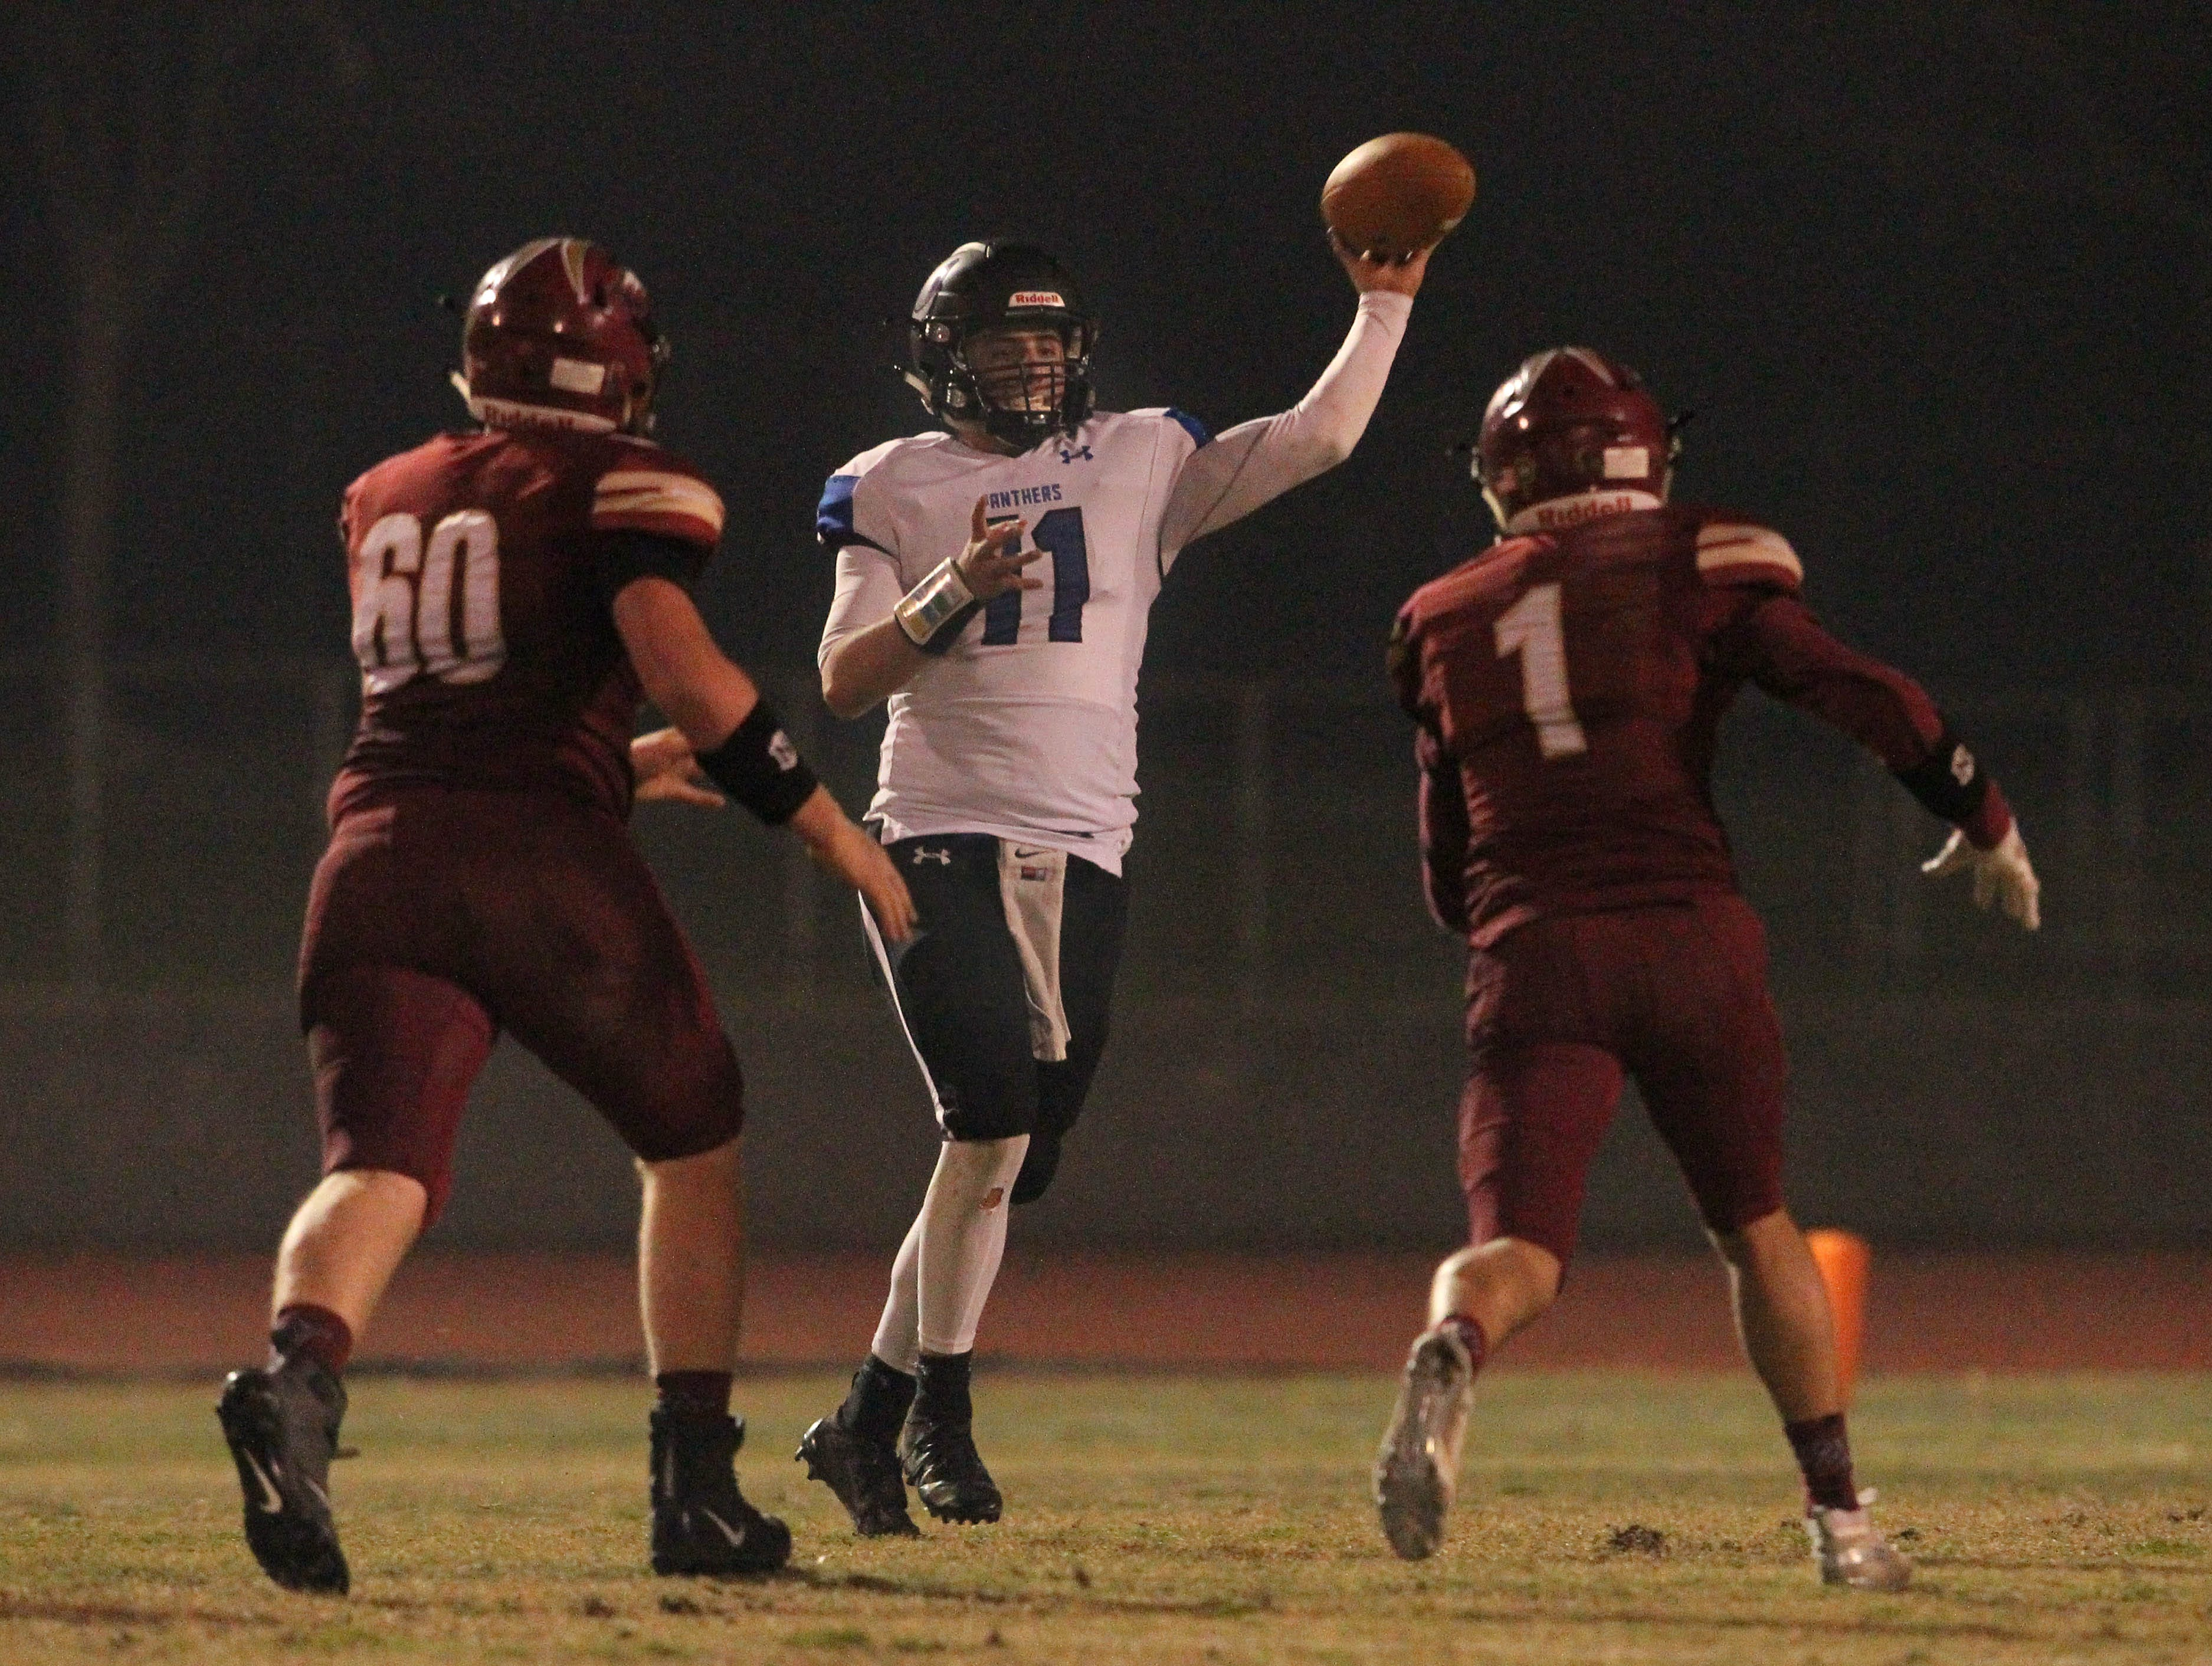 U-Prep QB Dylan Cabral (11) looks to pass the ball over West Valley's Brock Taylor (1) and Logan Gonzalez (60) in the 3rd quarter on Friday, Nov. 9.  The Eagles defeated the Panthers, 55 -6, at home to advance to the 2nd round against Lassen on Nov. 16.